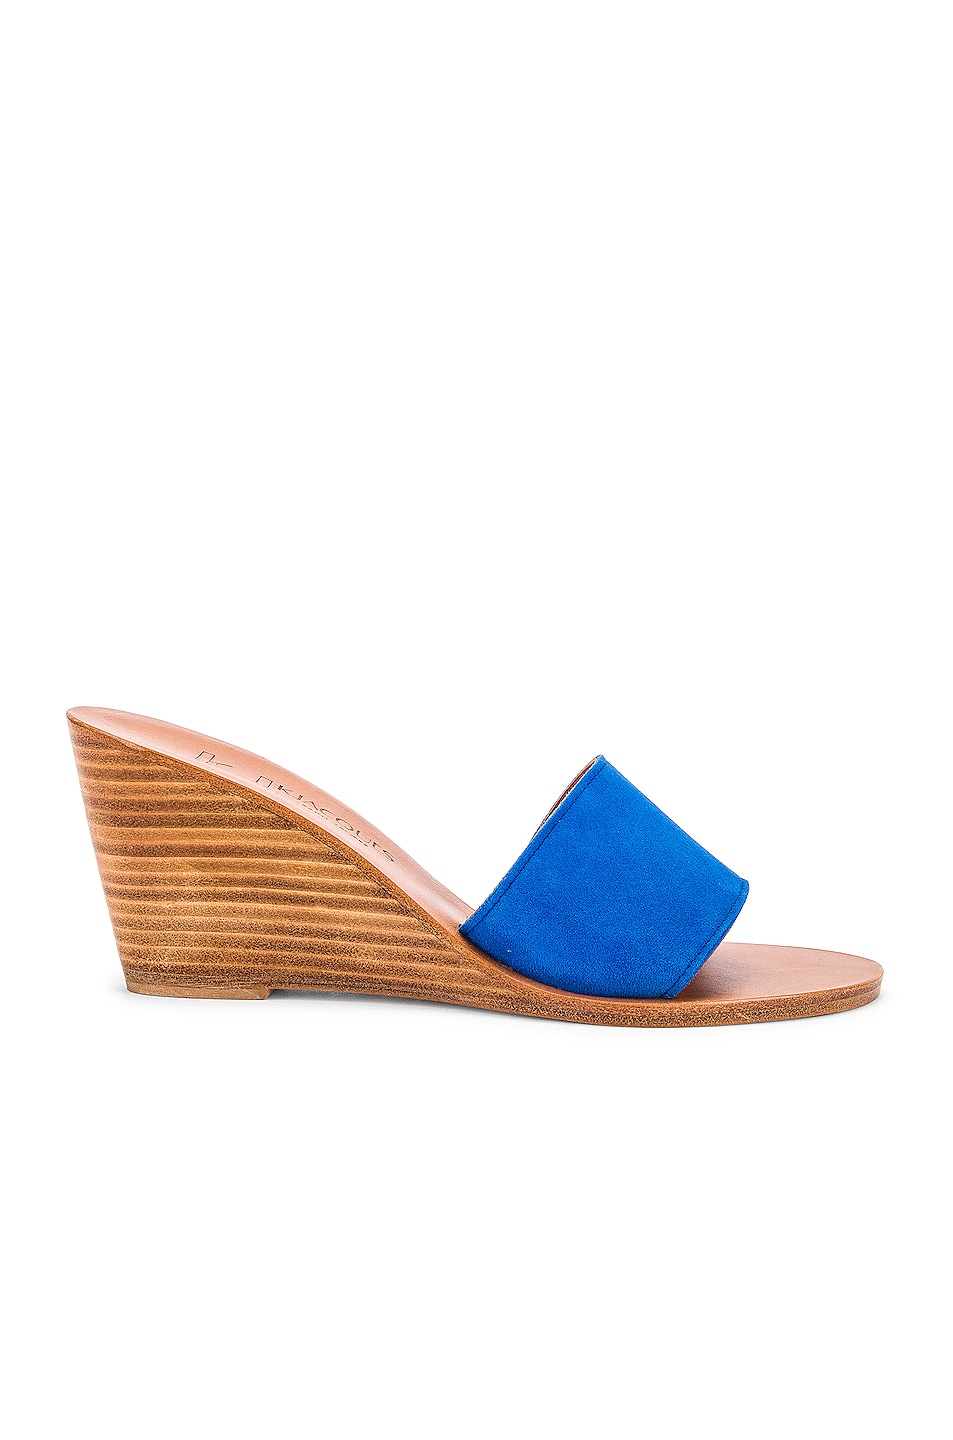 Image 1 of K Jacques Bianca Wedge in Velours Auto